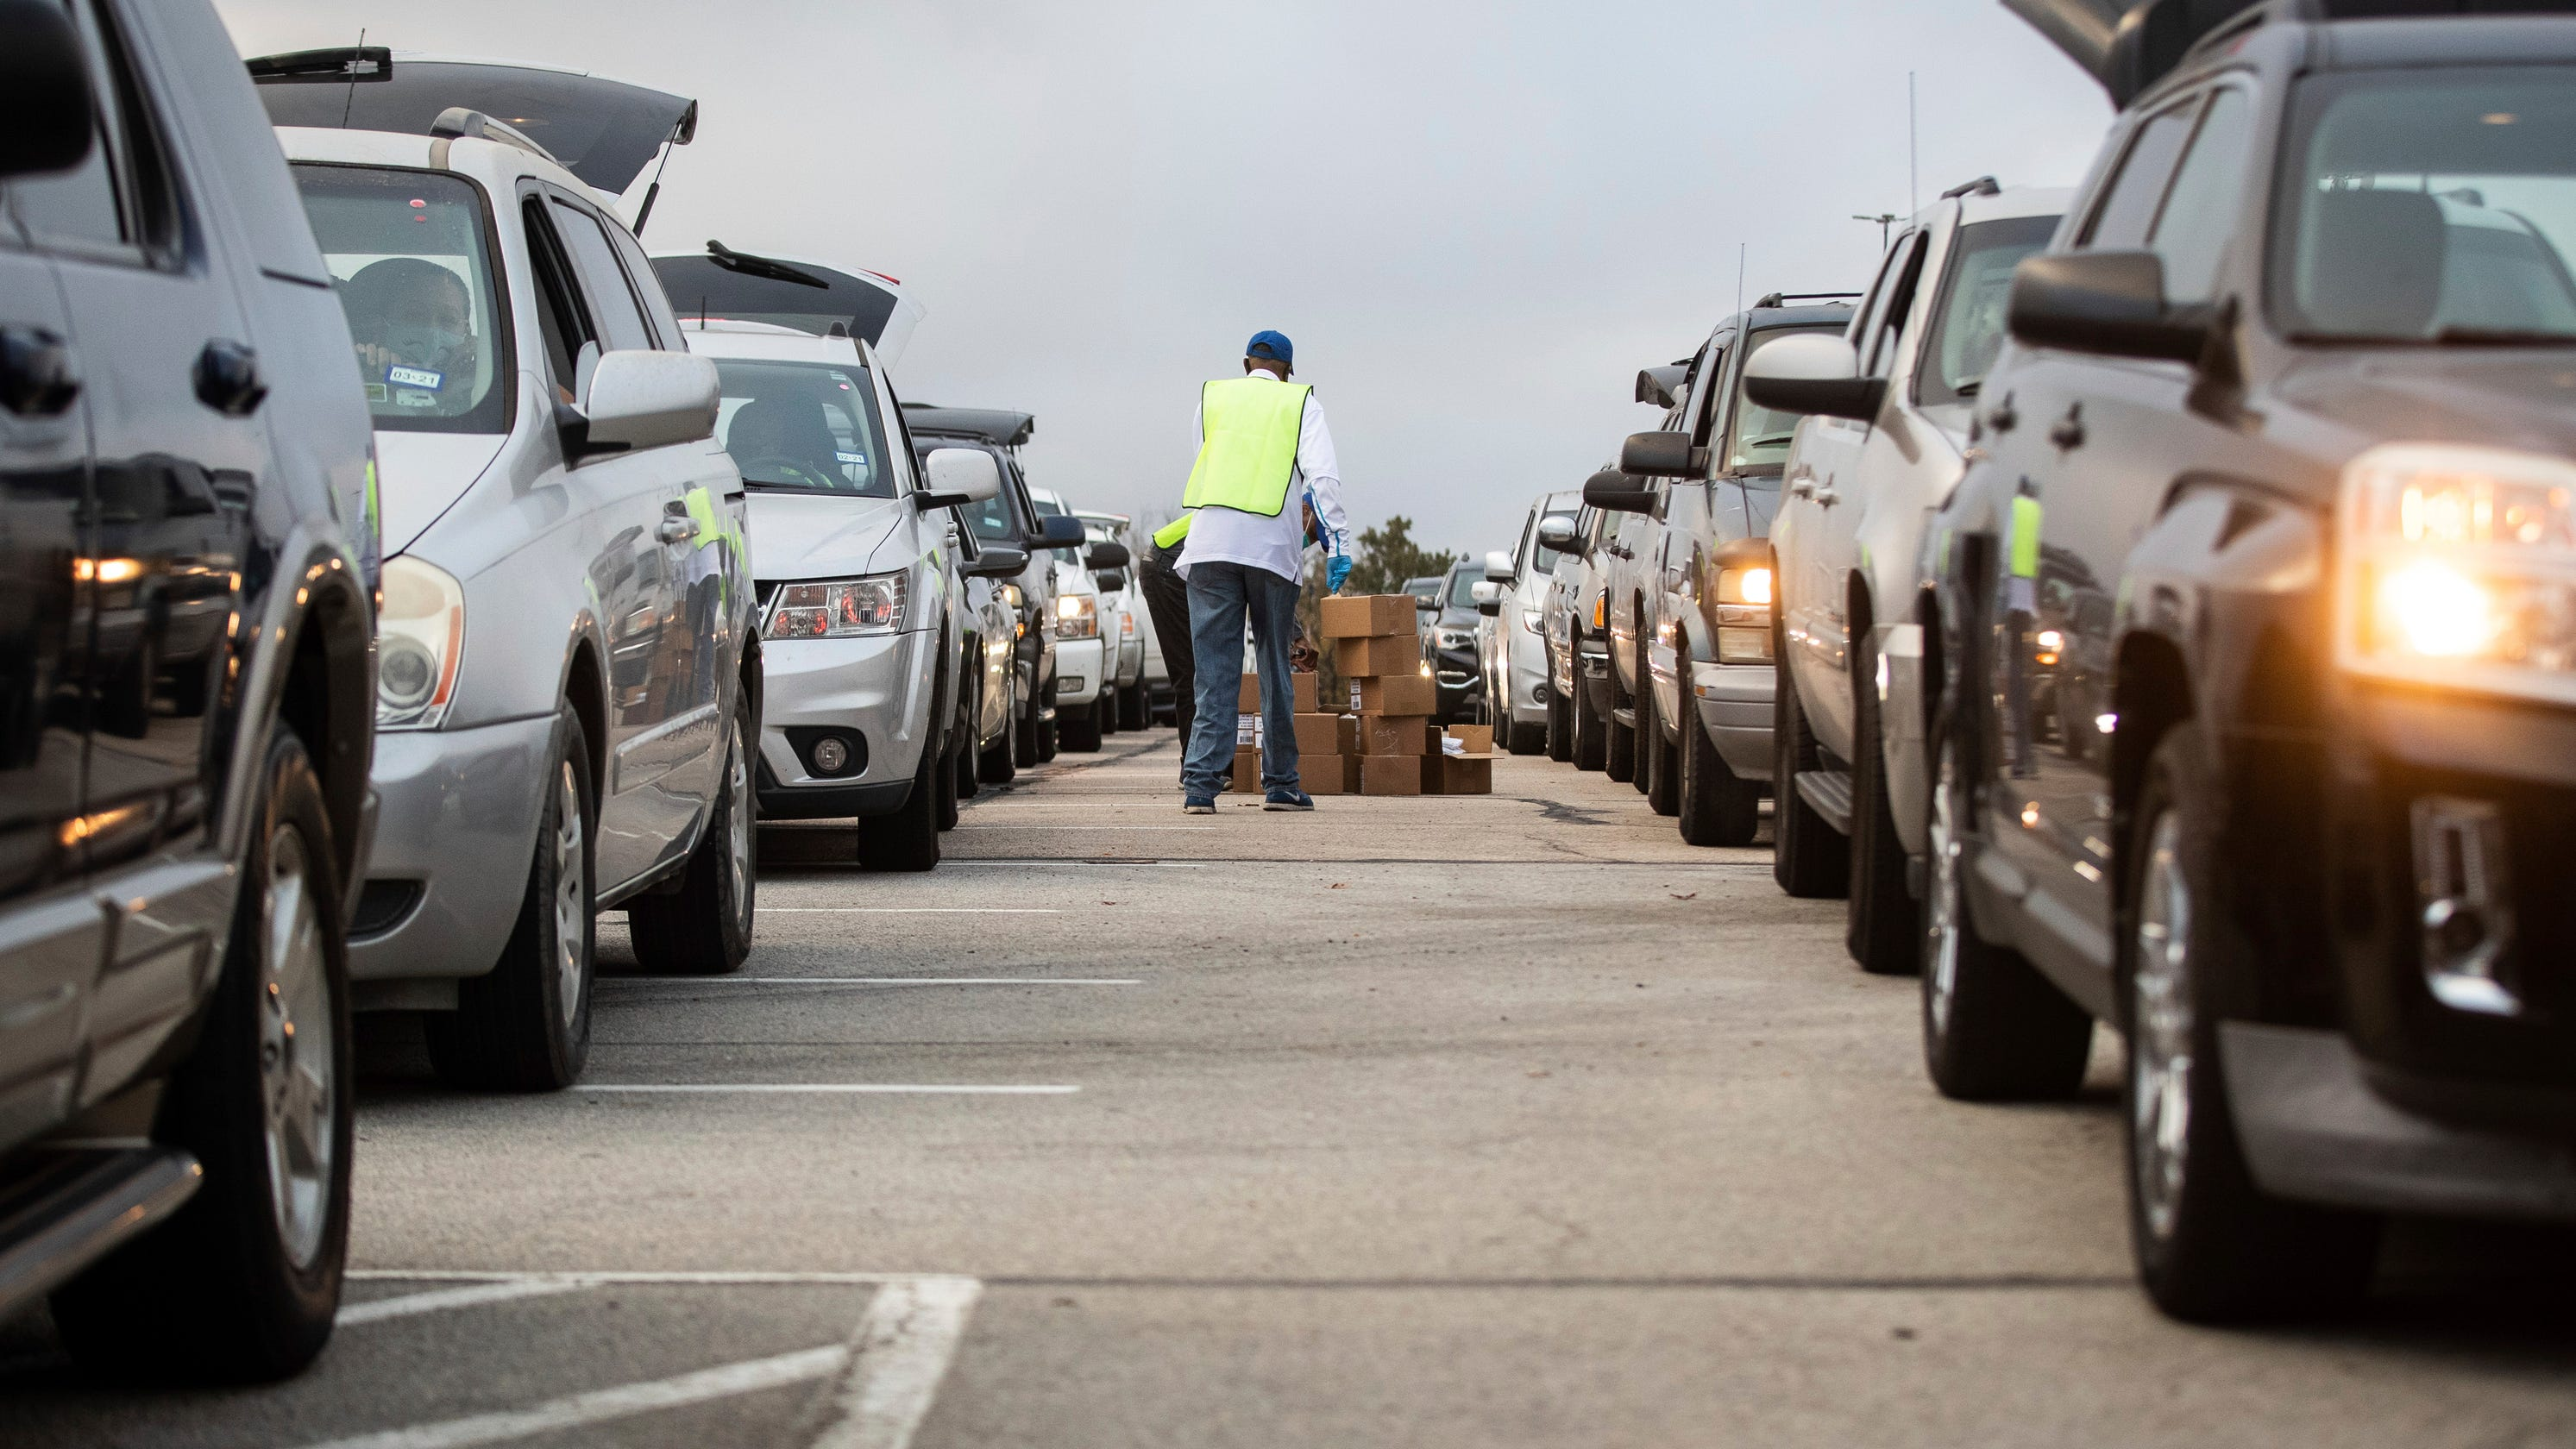 A two-mile line in Arizona. A four-hour wait in Ohio. Millions seek help to avoid going hungry on Thanksgiving.